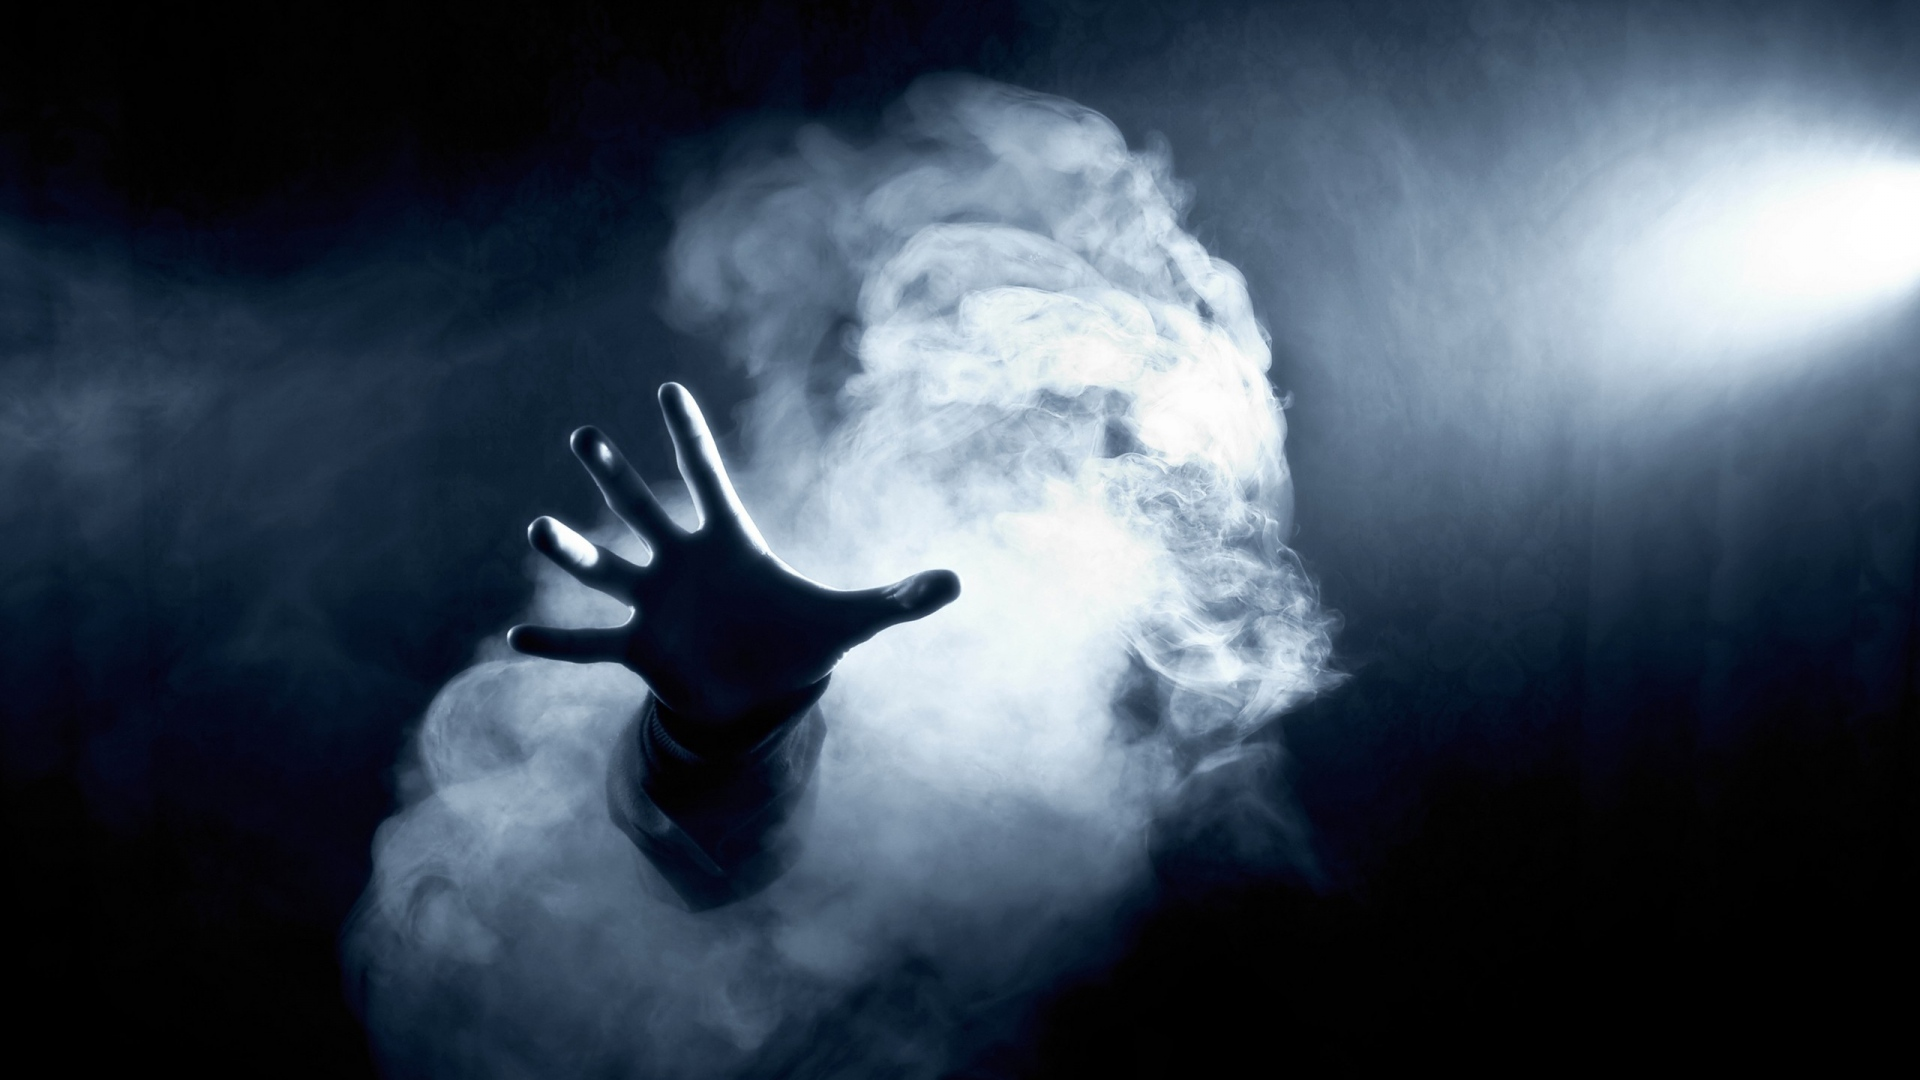 Download wallpaper 1920x1080 dark hand smoke full hd 1080p hd background - Dark smoking wallpapers ...